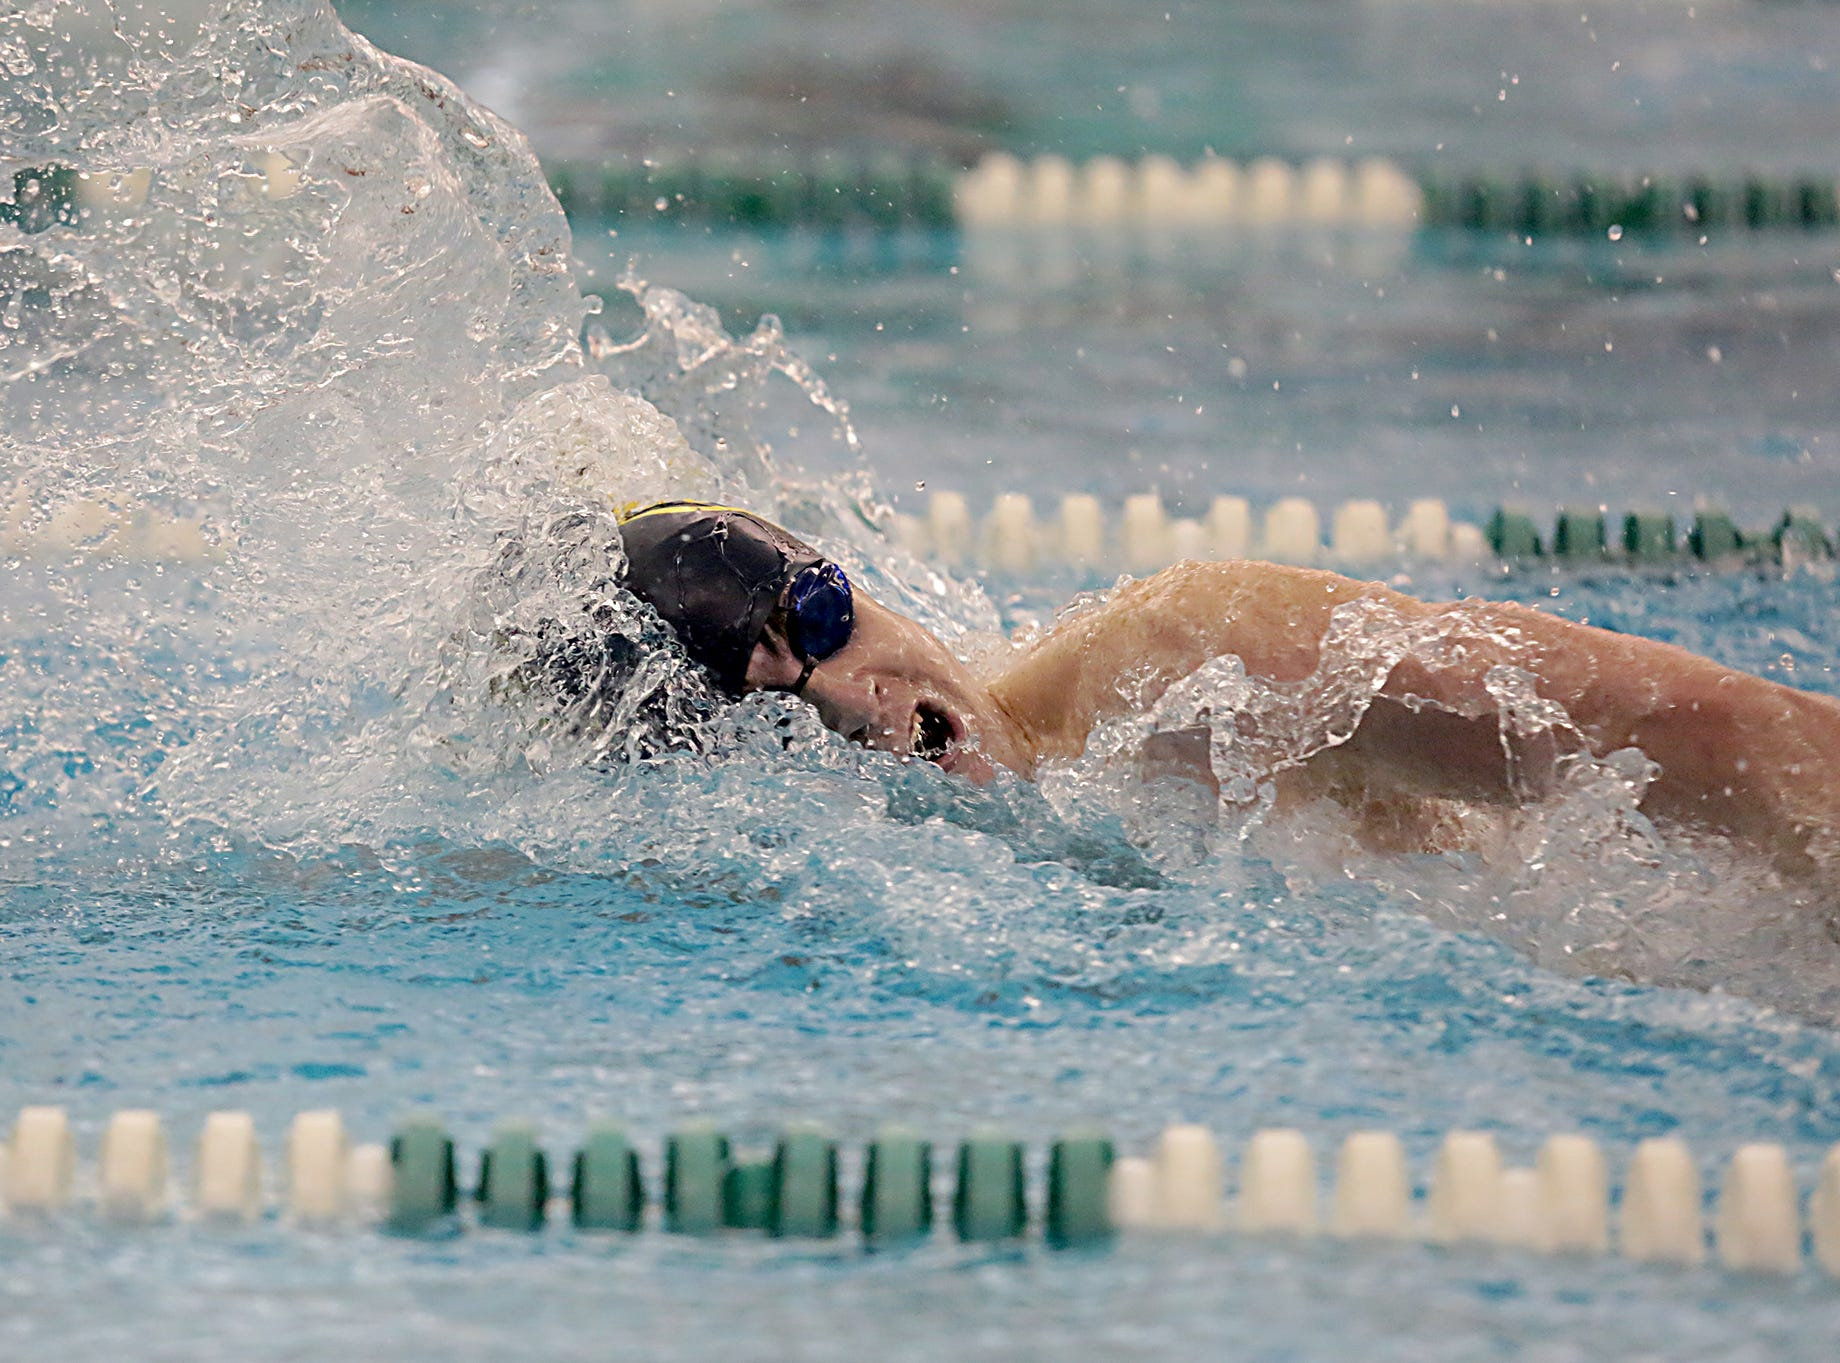 Will Leary, from Moeller, competes in the 100-yard freestyle during the Division I and Division II sectionals at Mason High School in Mason Friday, Feb. 8, 2019.